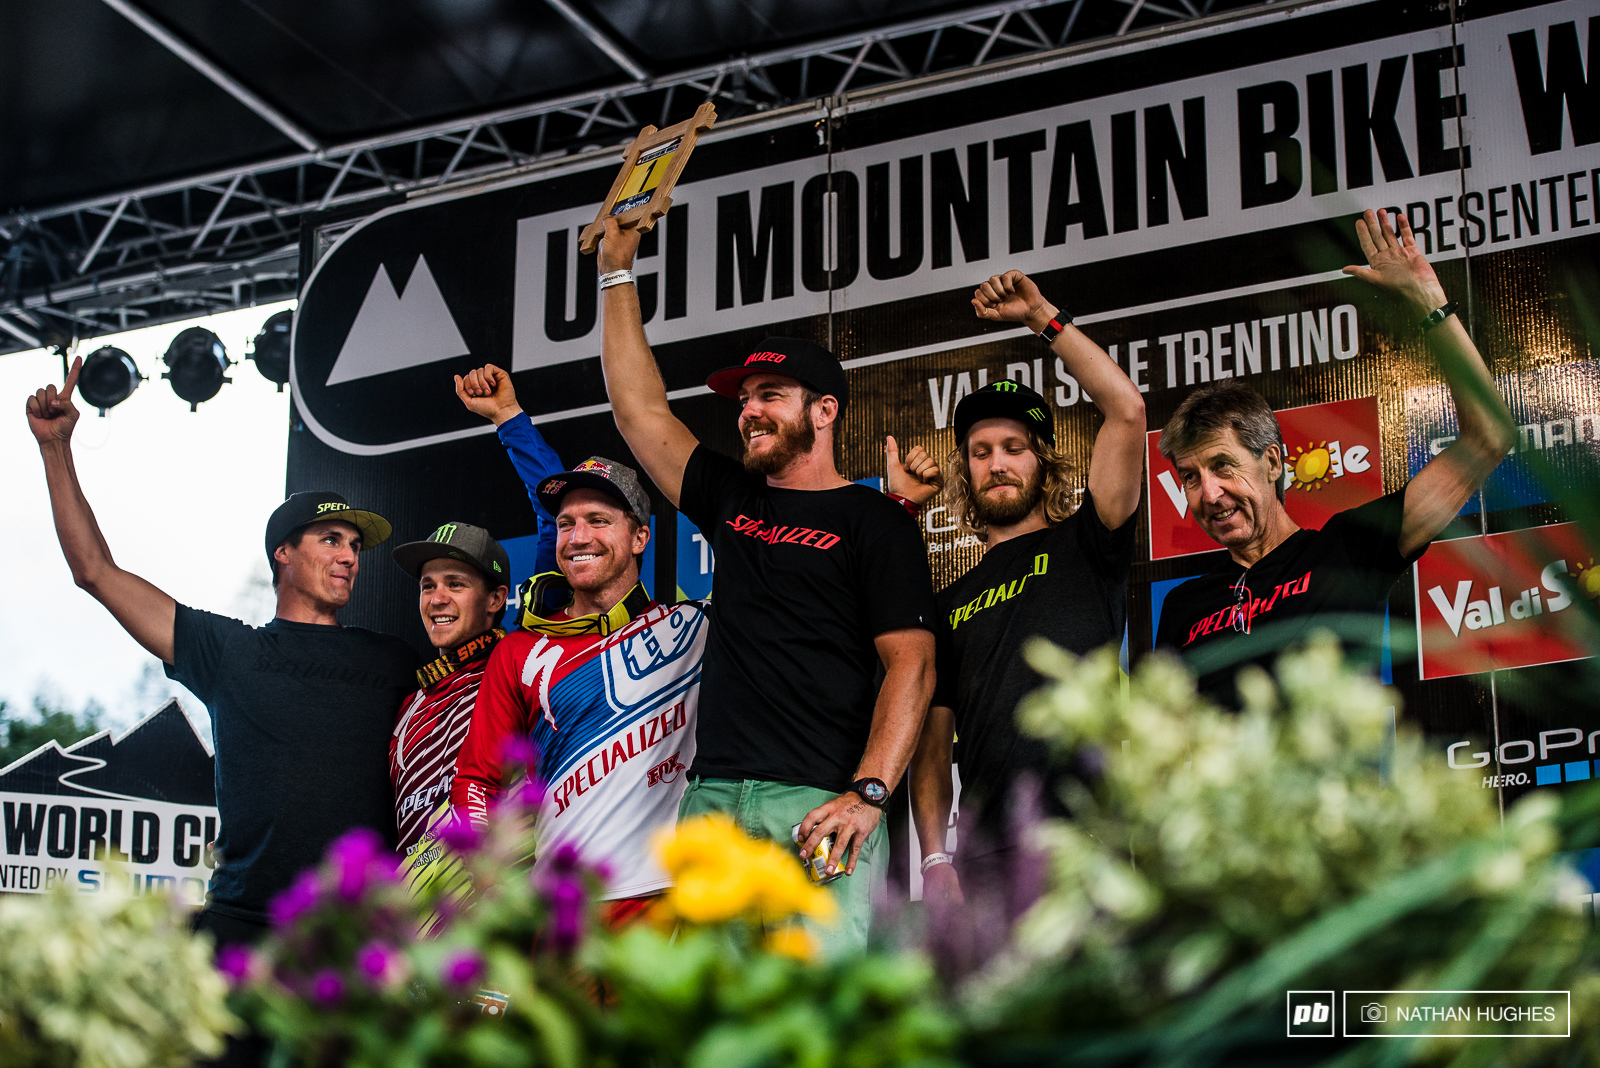 Having just two riders proved to be no handicap to the Specialized Racing team and they took the team battle title.